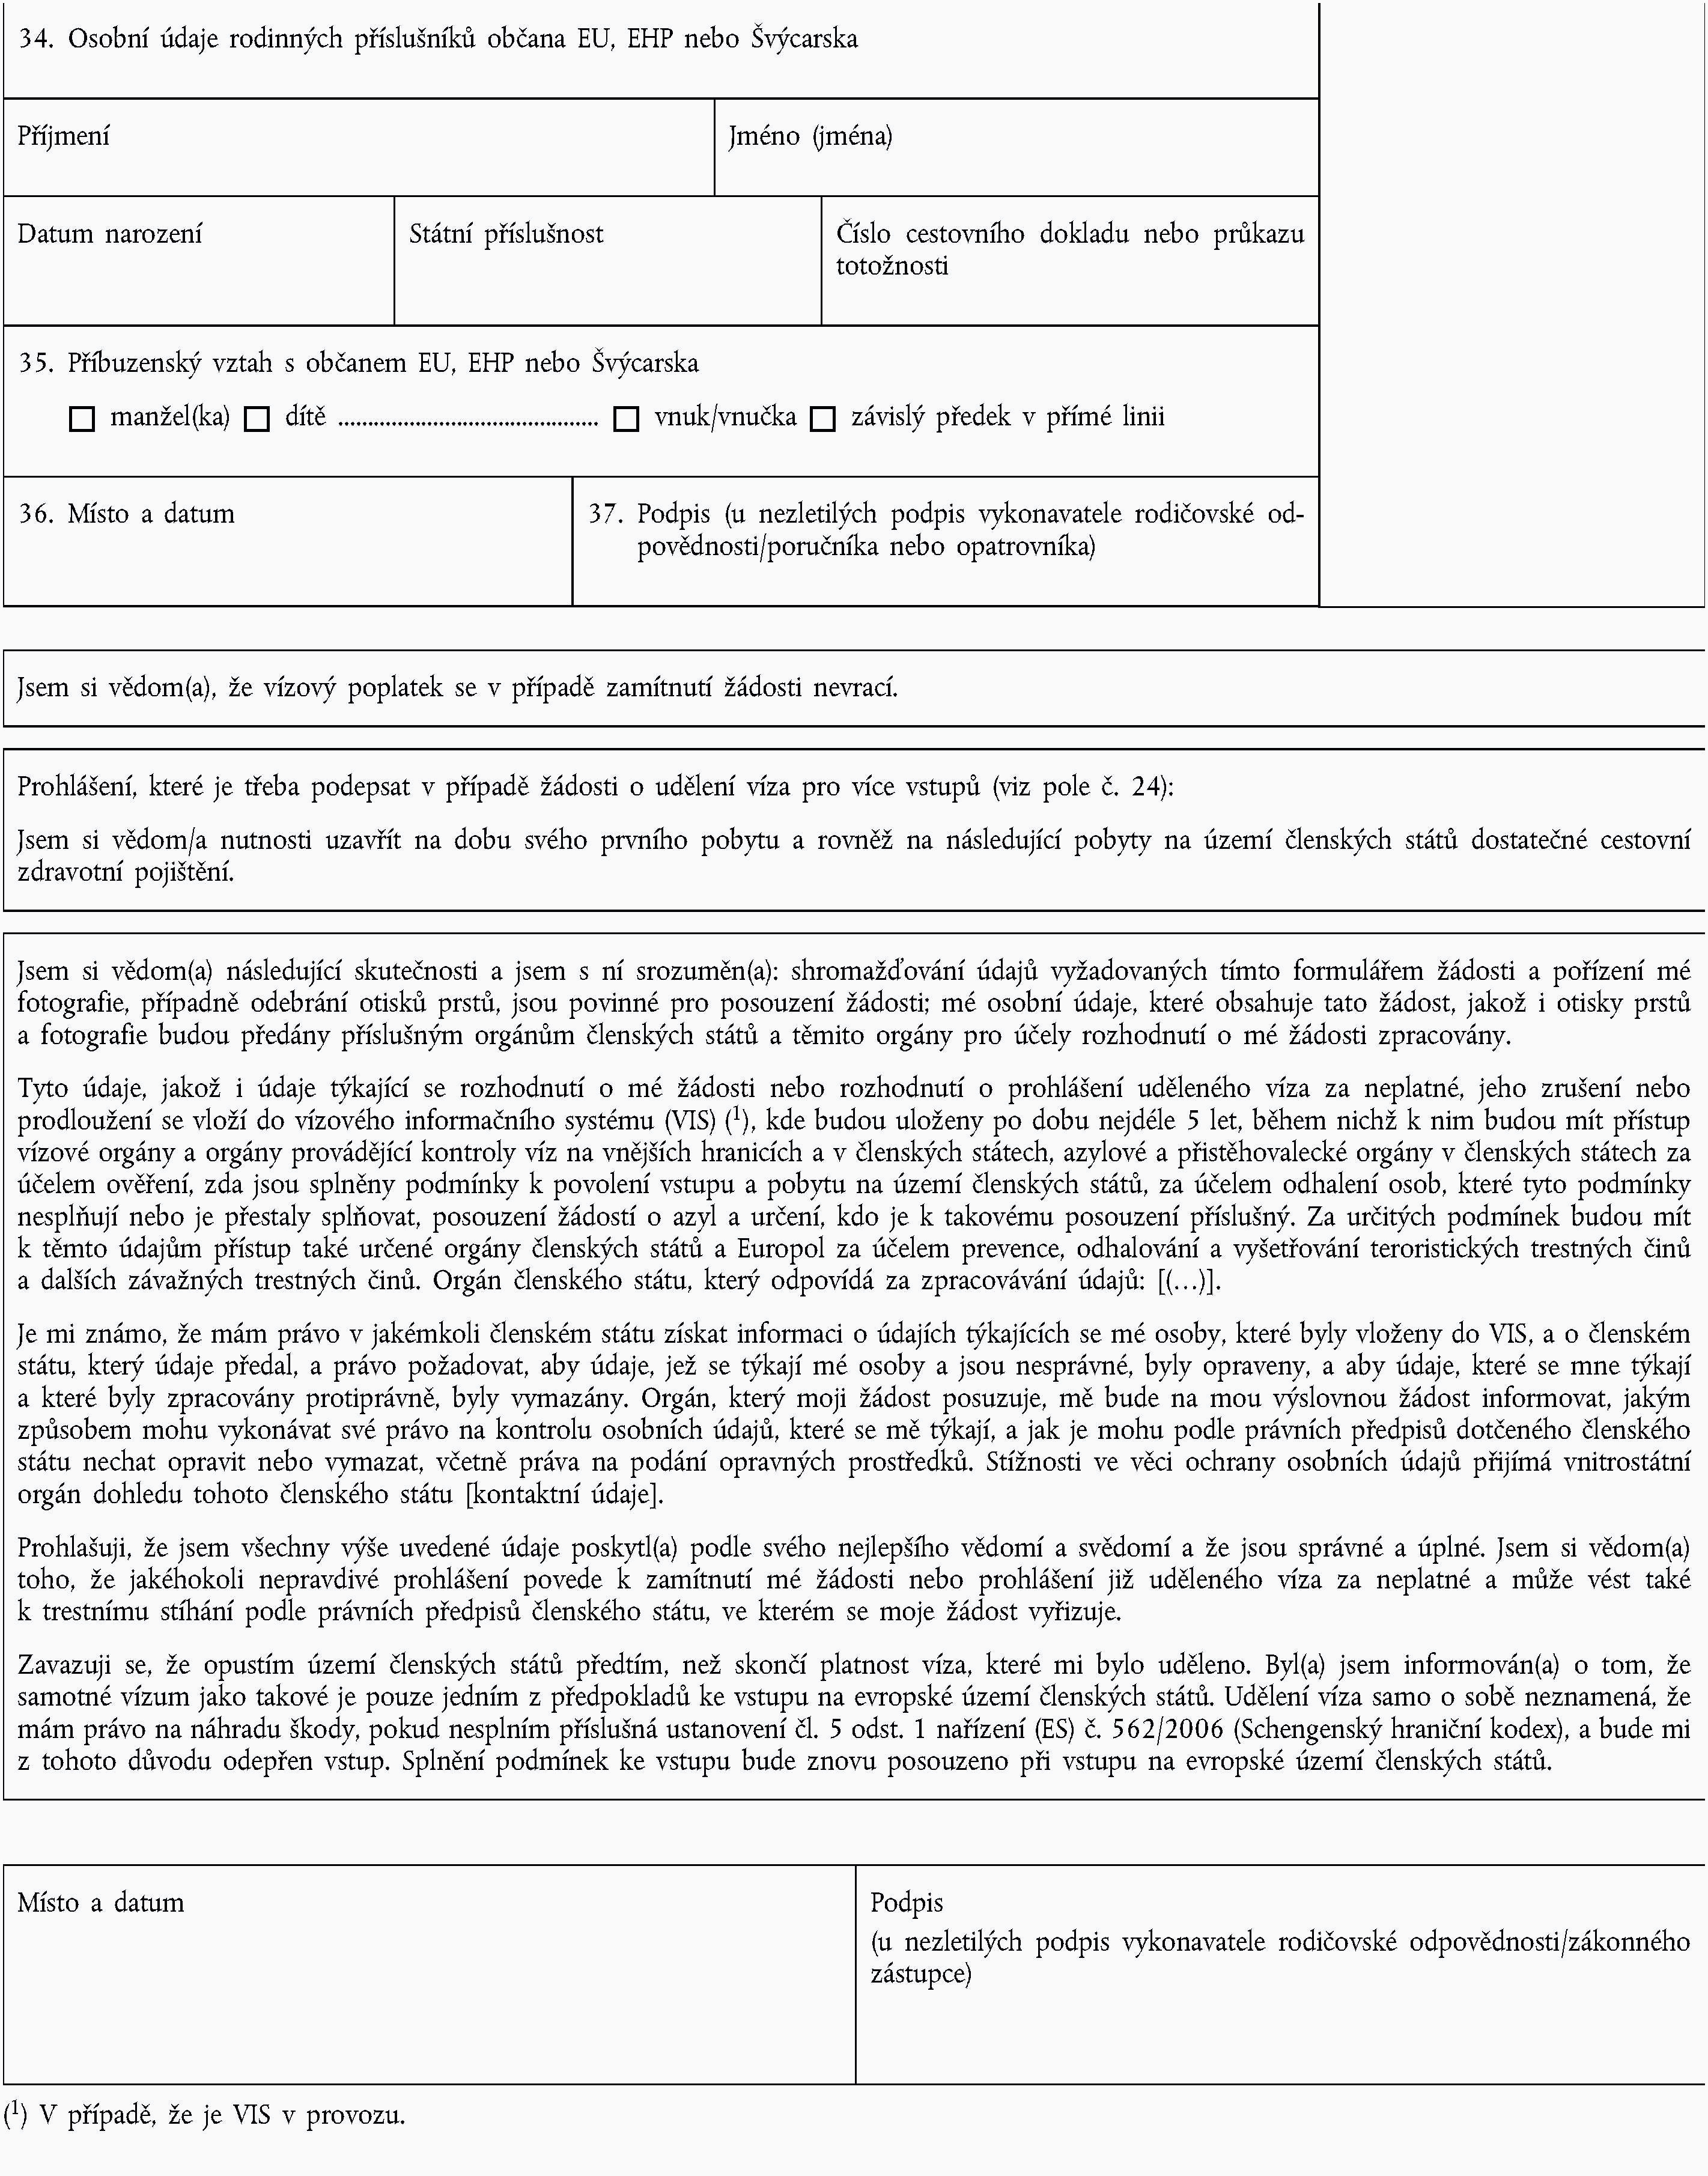 Lettre De Motivation formation Alternance Contrat Alternance Logistique Gratuit Lettre De Motivation assistant